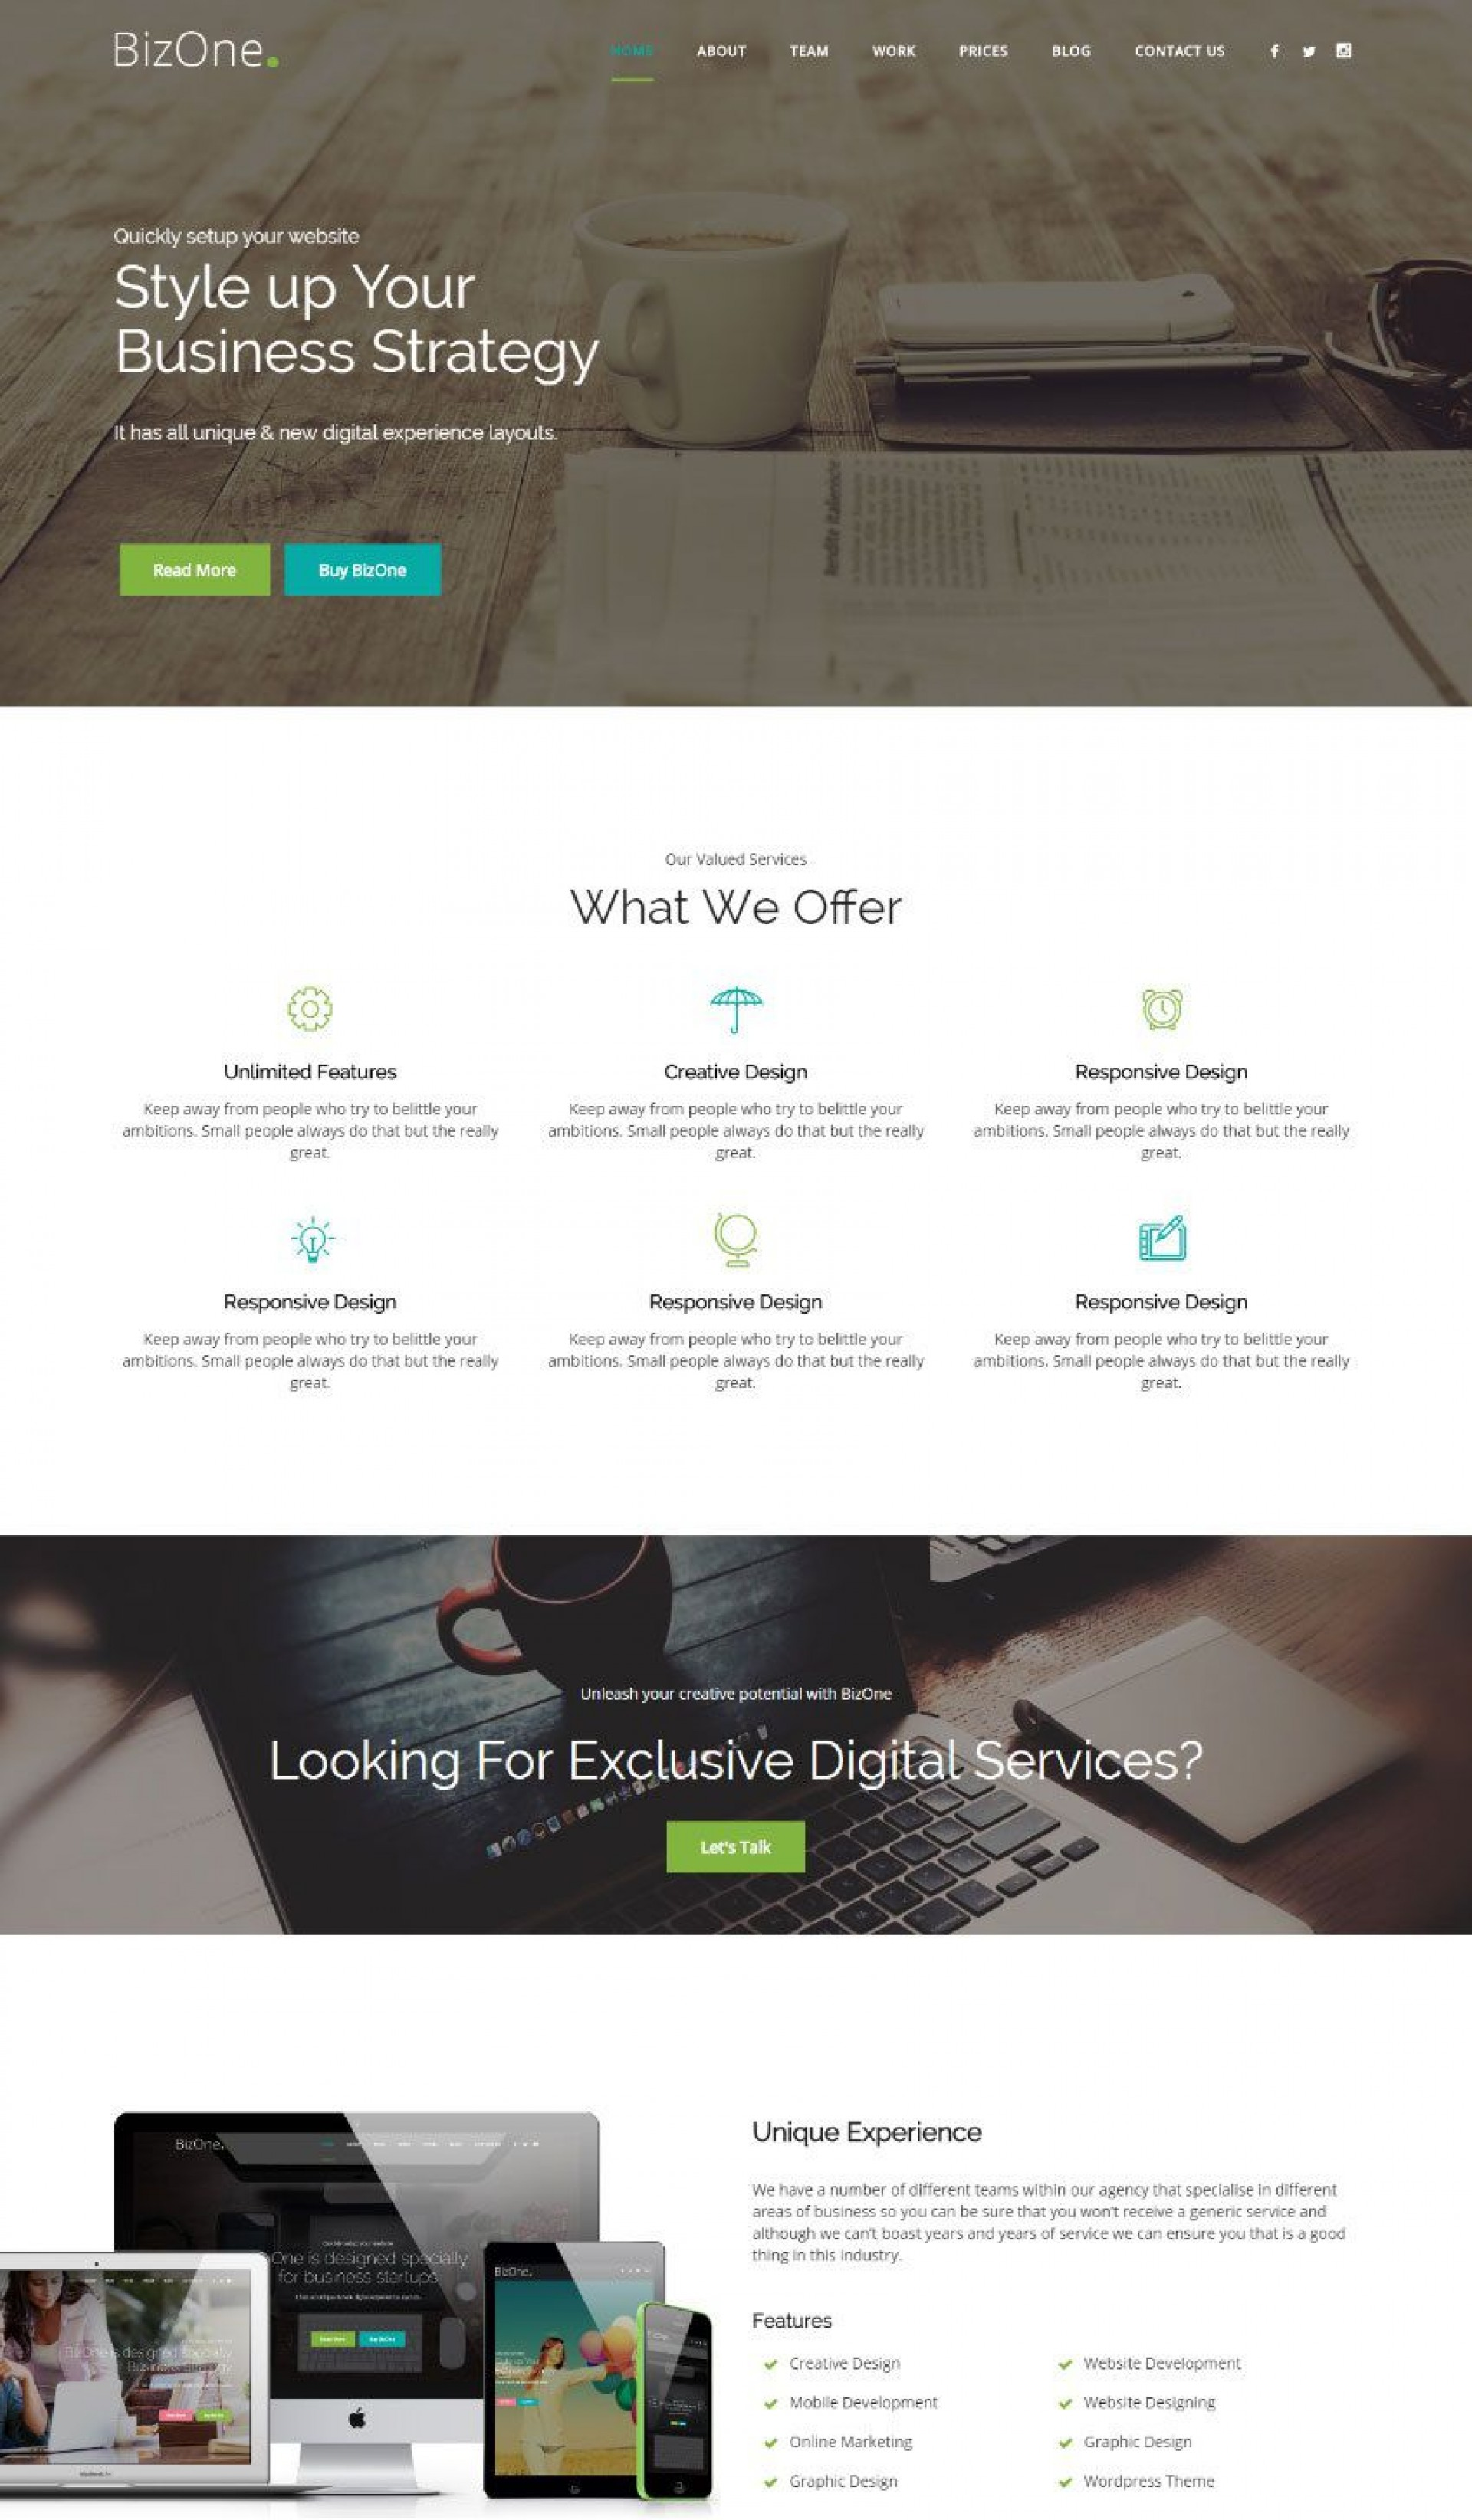 001 Stirring Single Page Web Template Image  Templates One Website Free Download Html5 Bootstrap1920